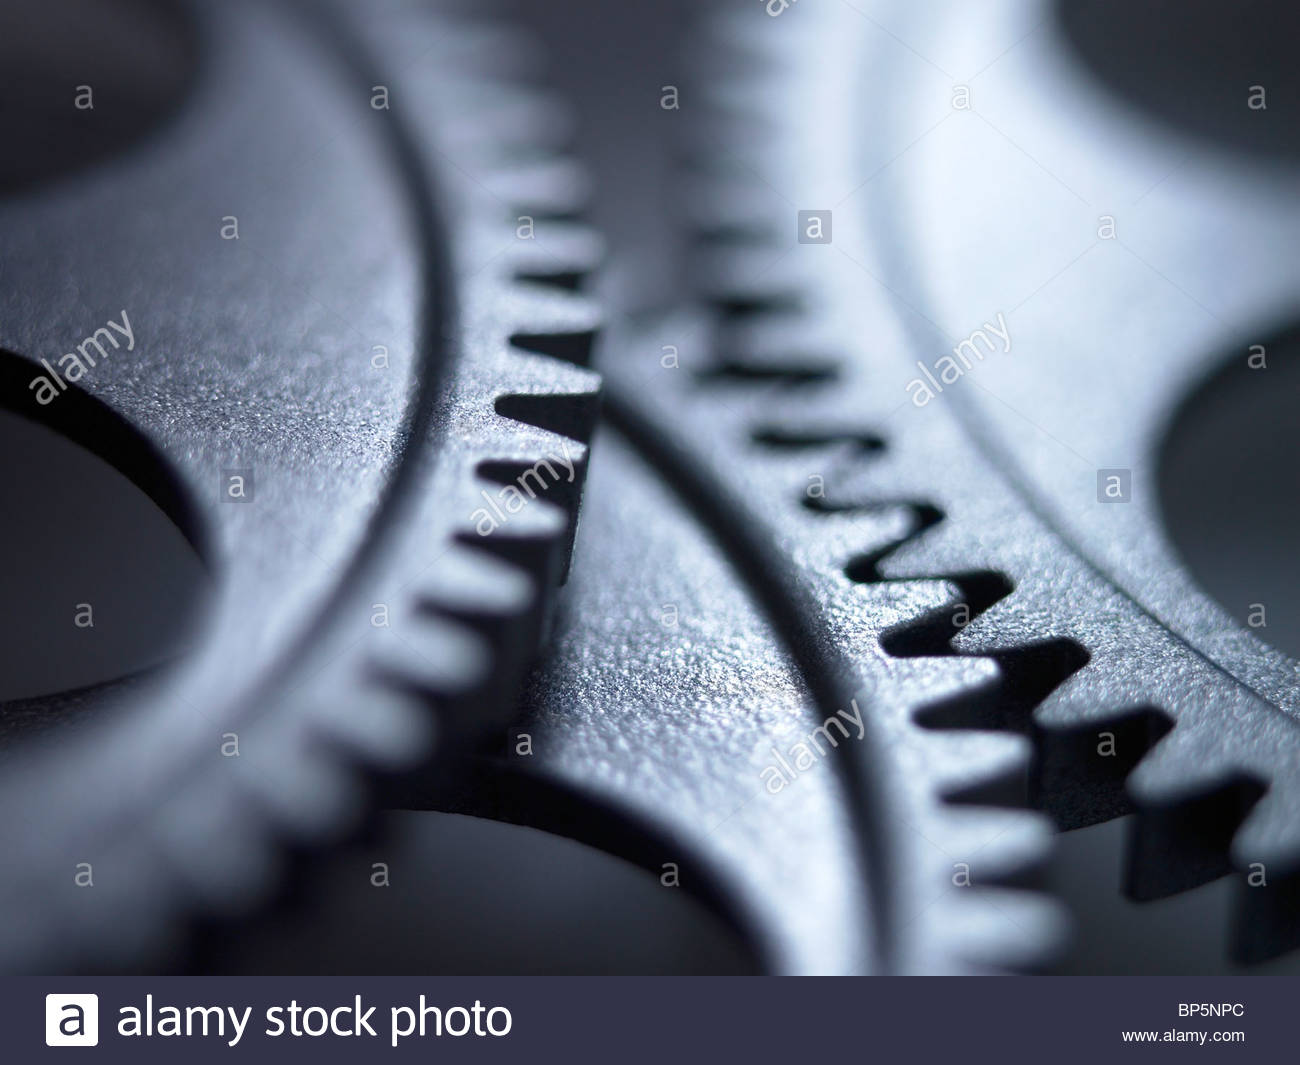 Close up of metal cogs Photo Stock